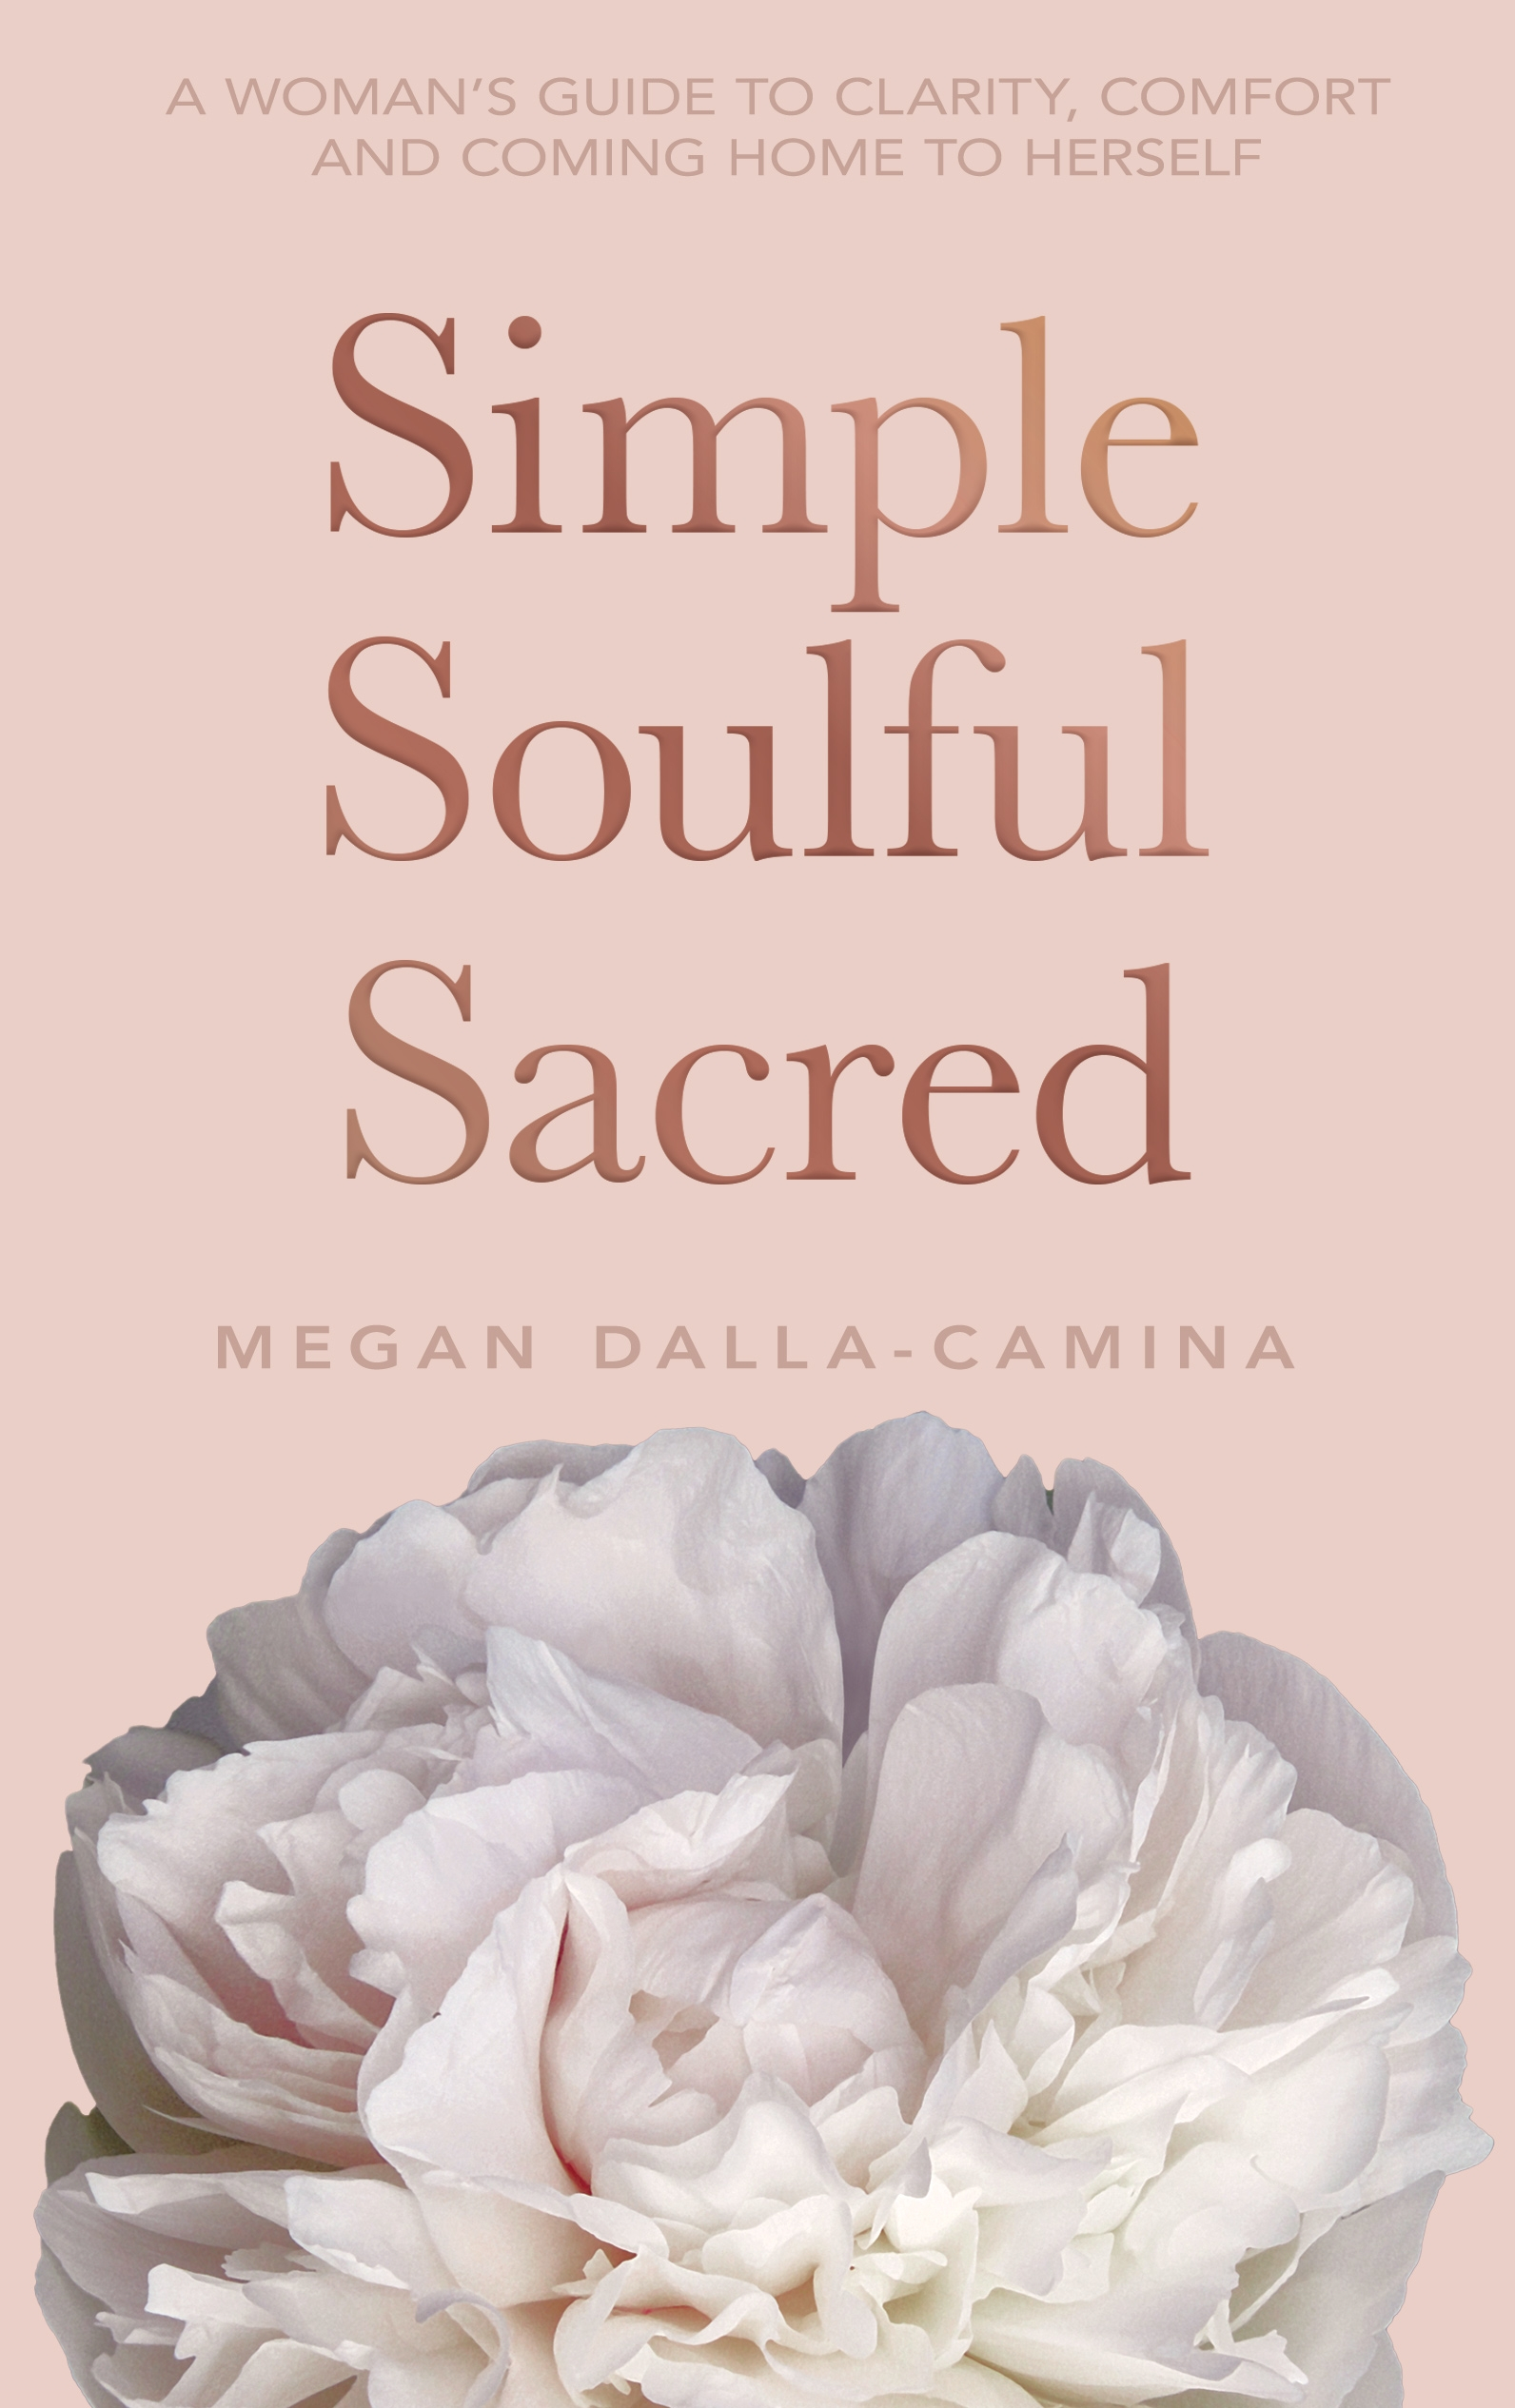 Simple, Soulful, Sacred